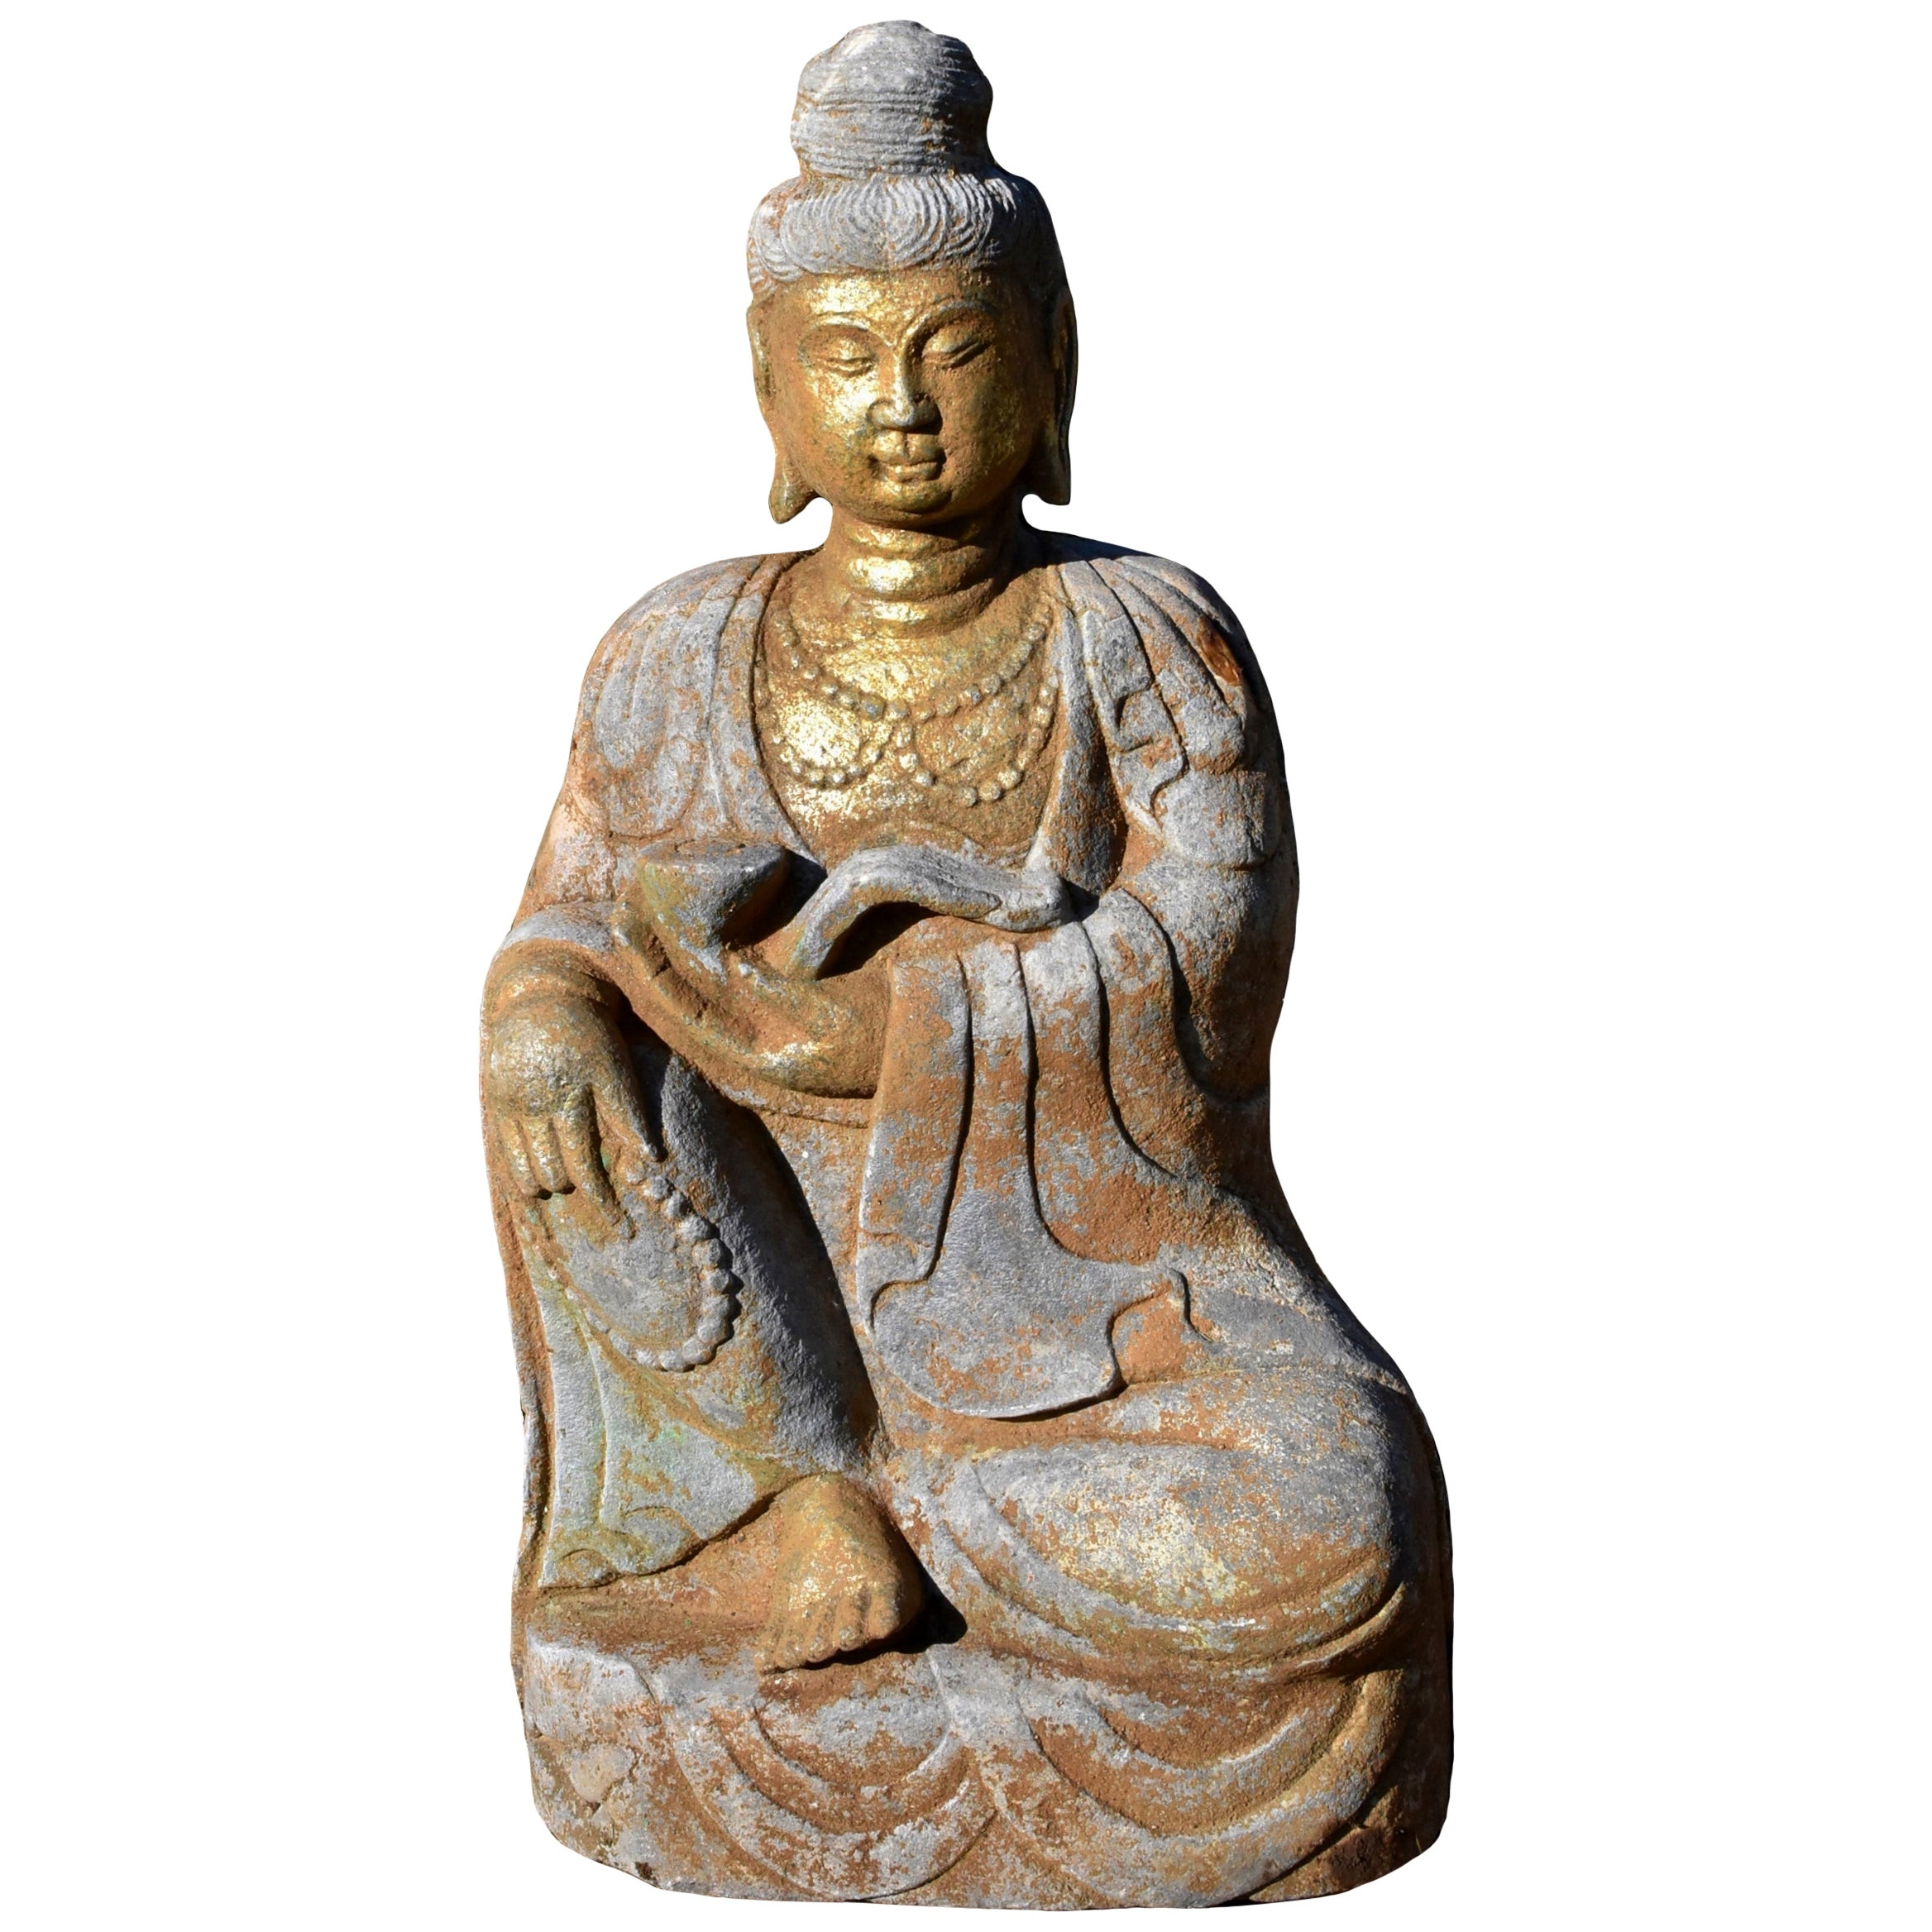 Golden Stone Buddha Statue Holding a Ru Yi in Tang Style